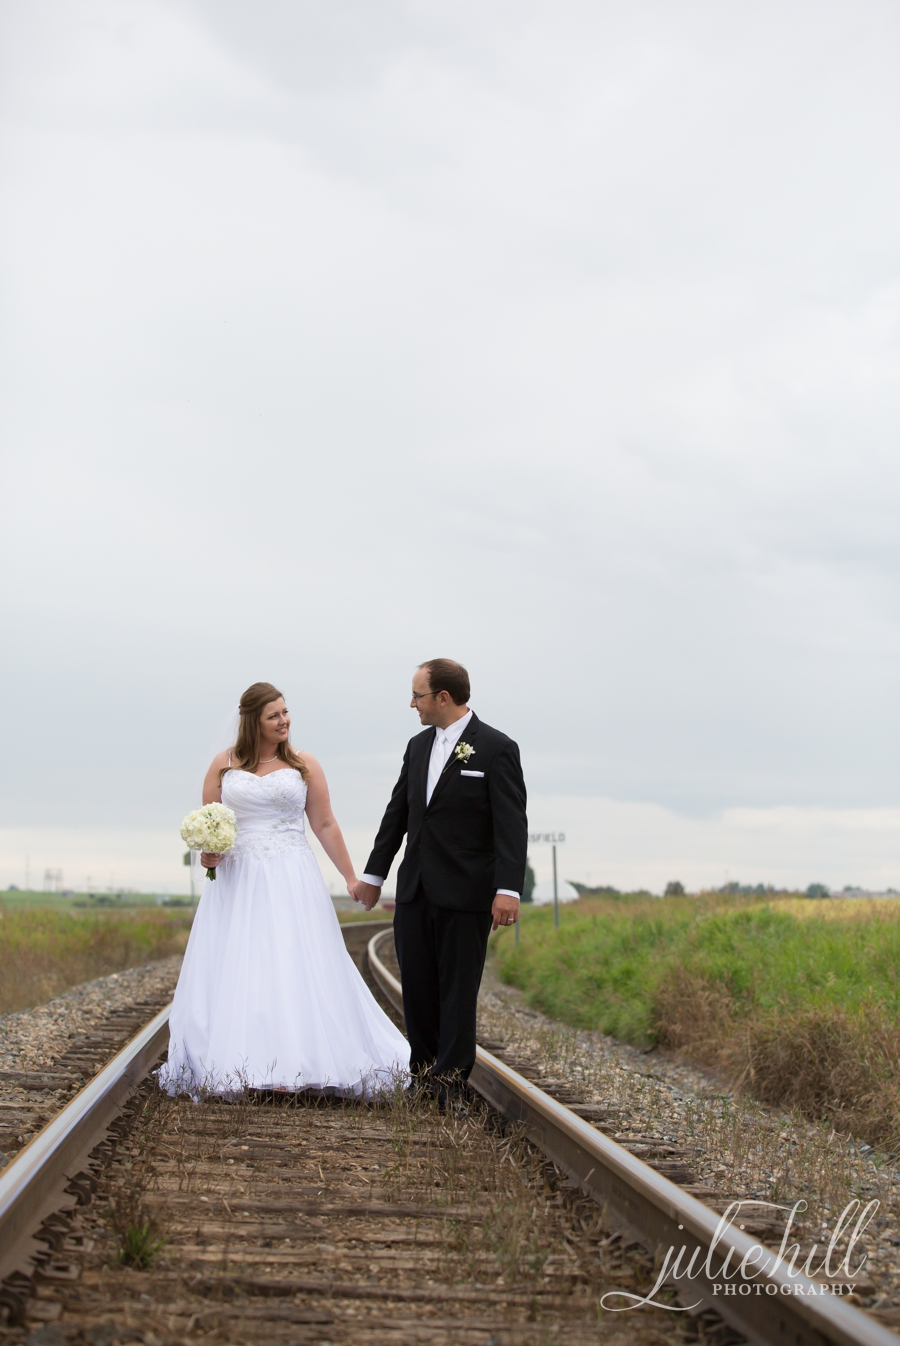 10-Crossfield-Alberta-Julie-Hill-Photography-Wedding-Brides-Train-Tracks-Rustic-photo02